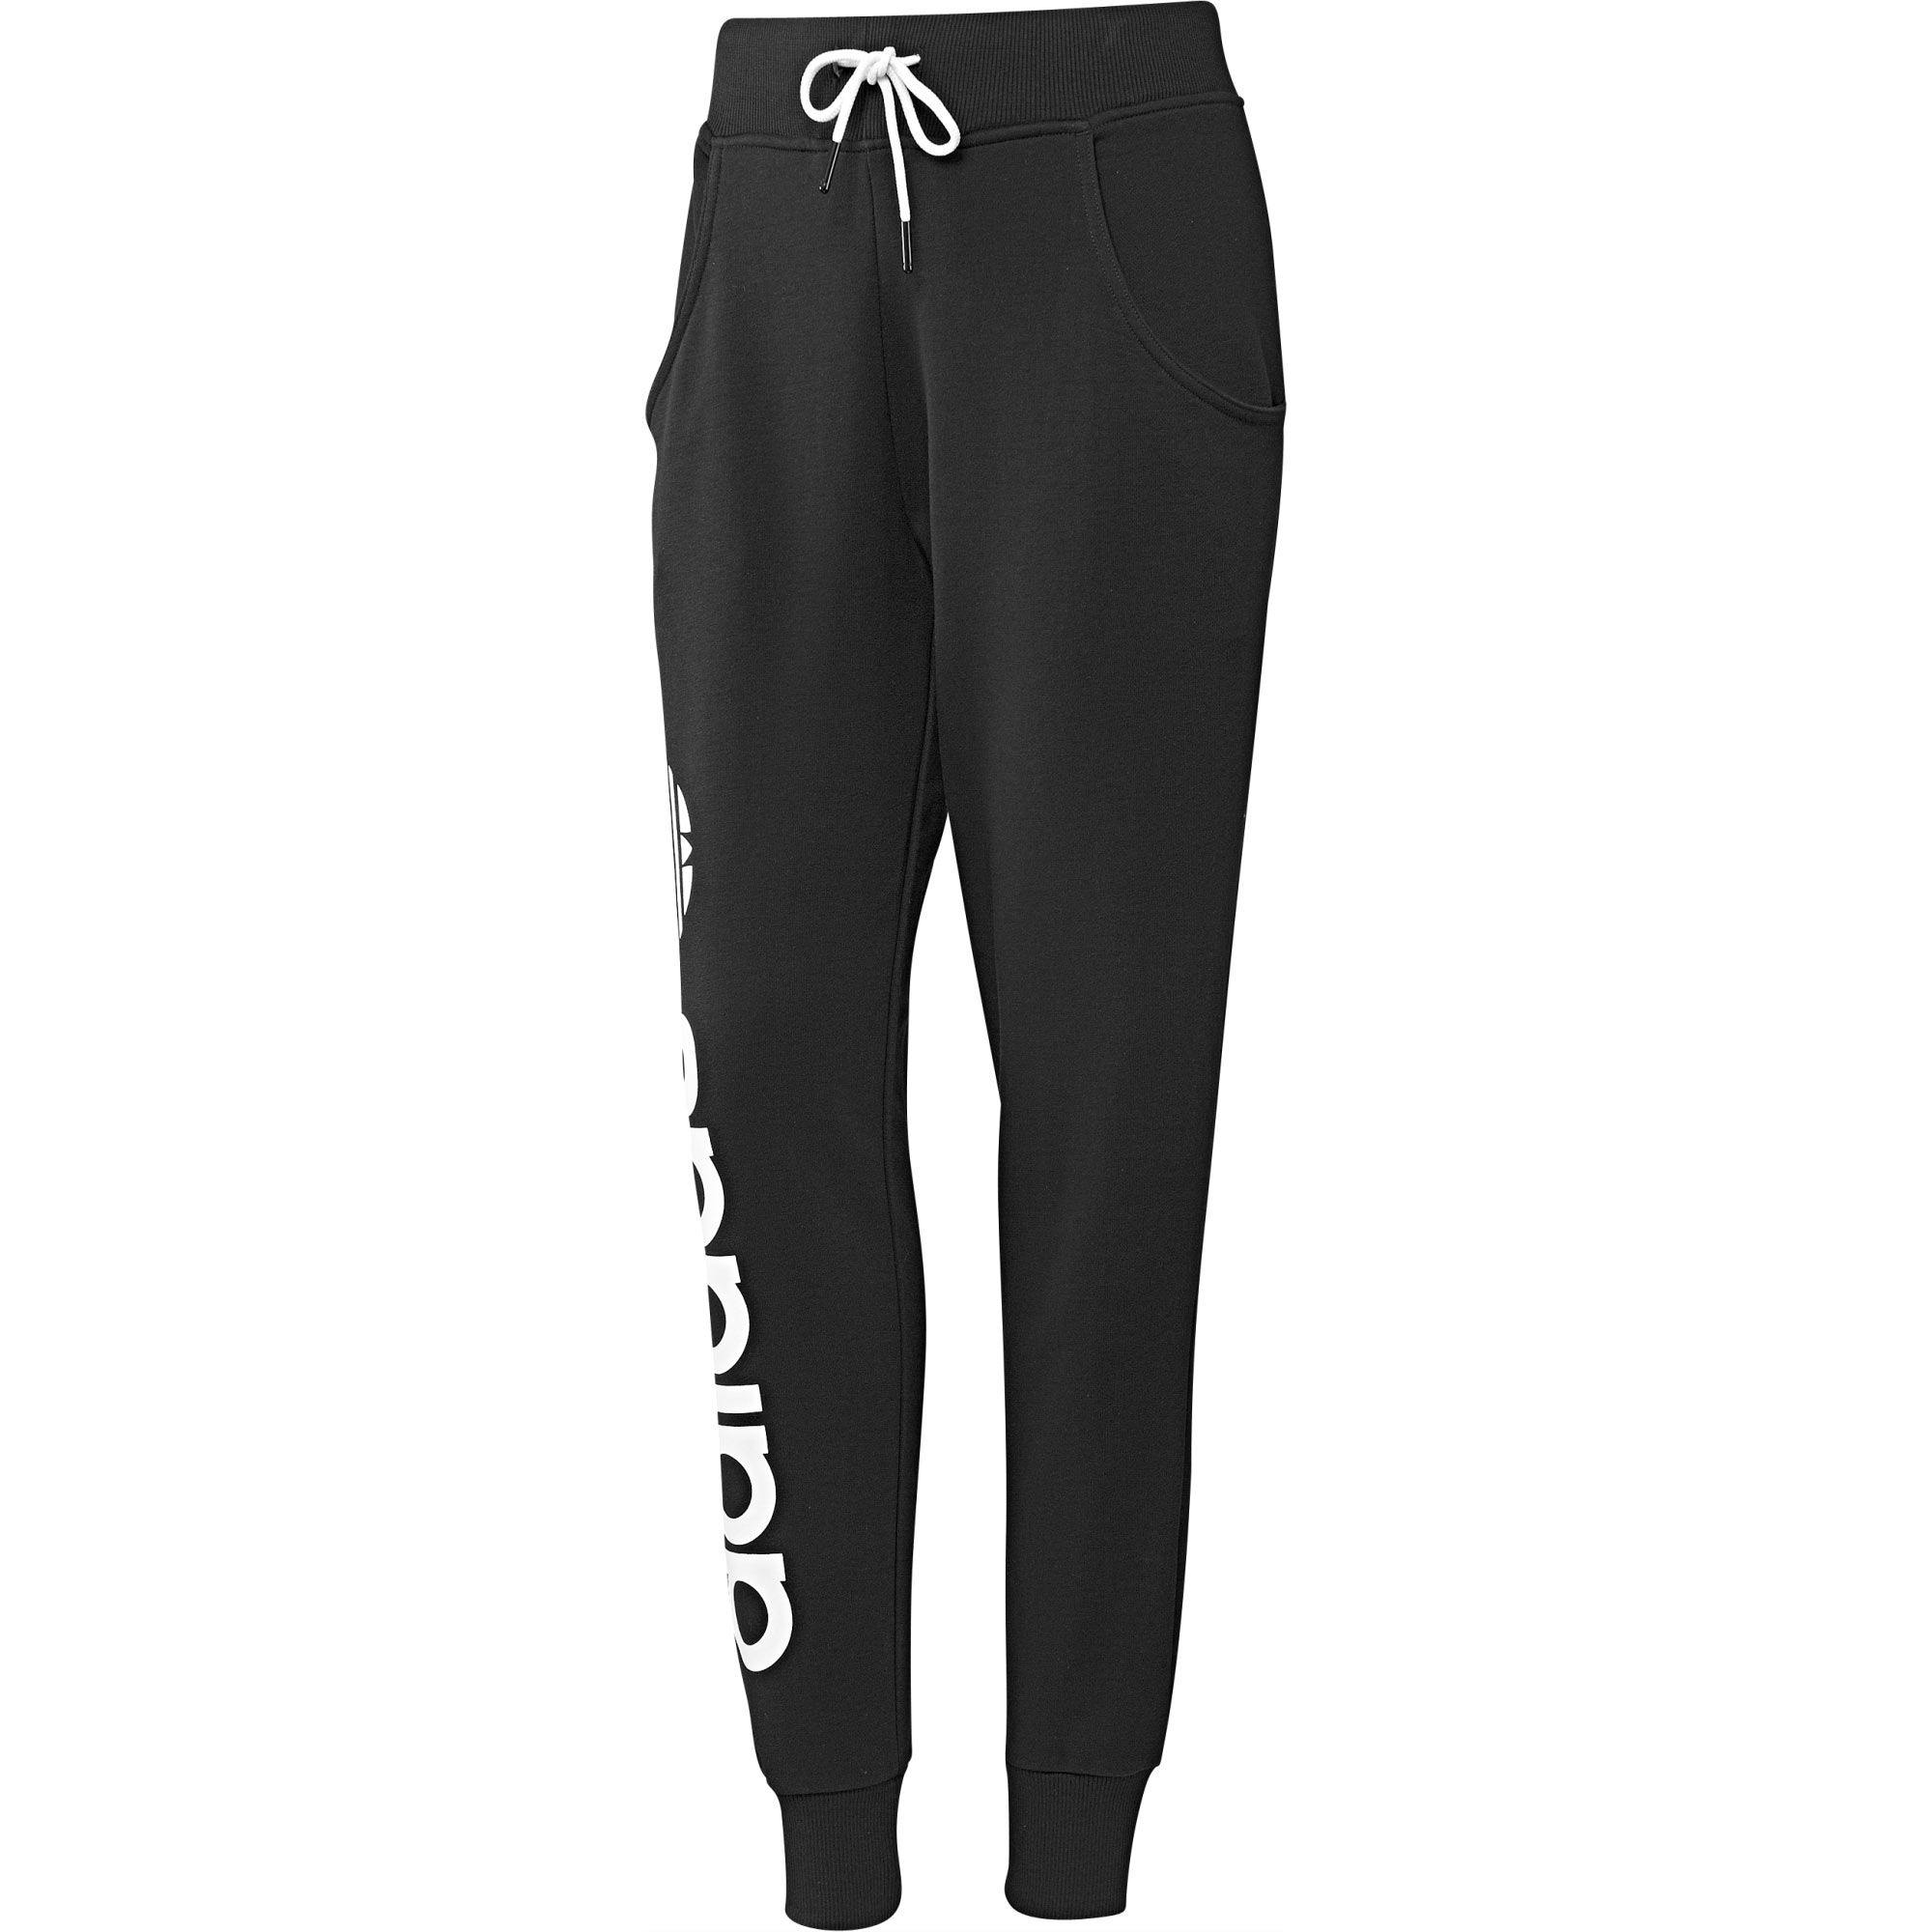 3f0618df9723 adidas Women s Baggy Track Pants